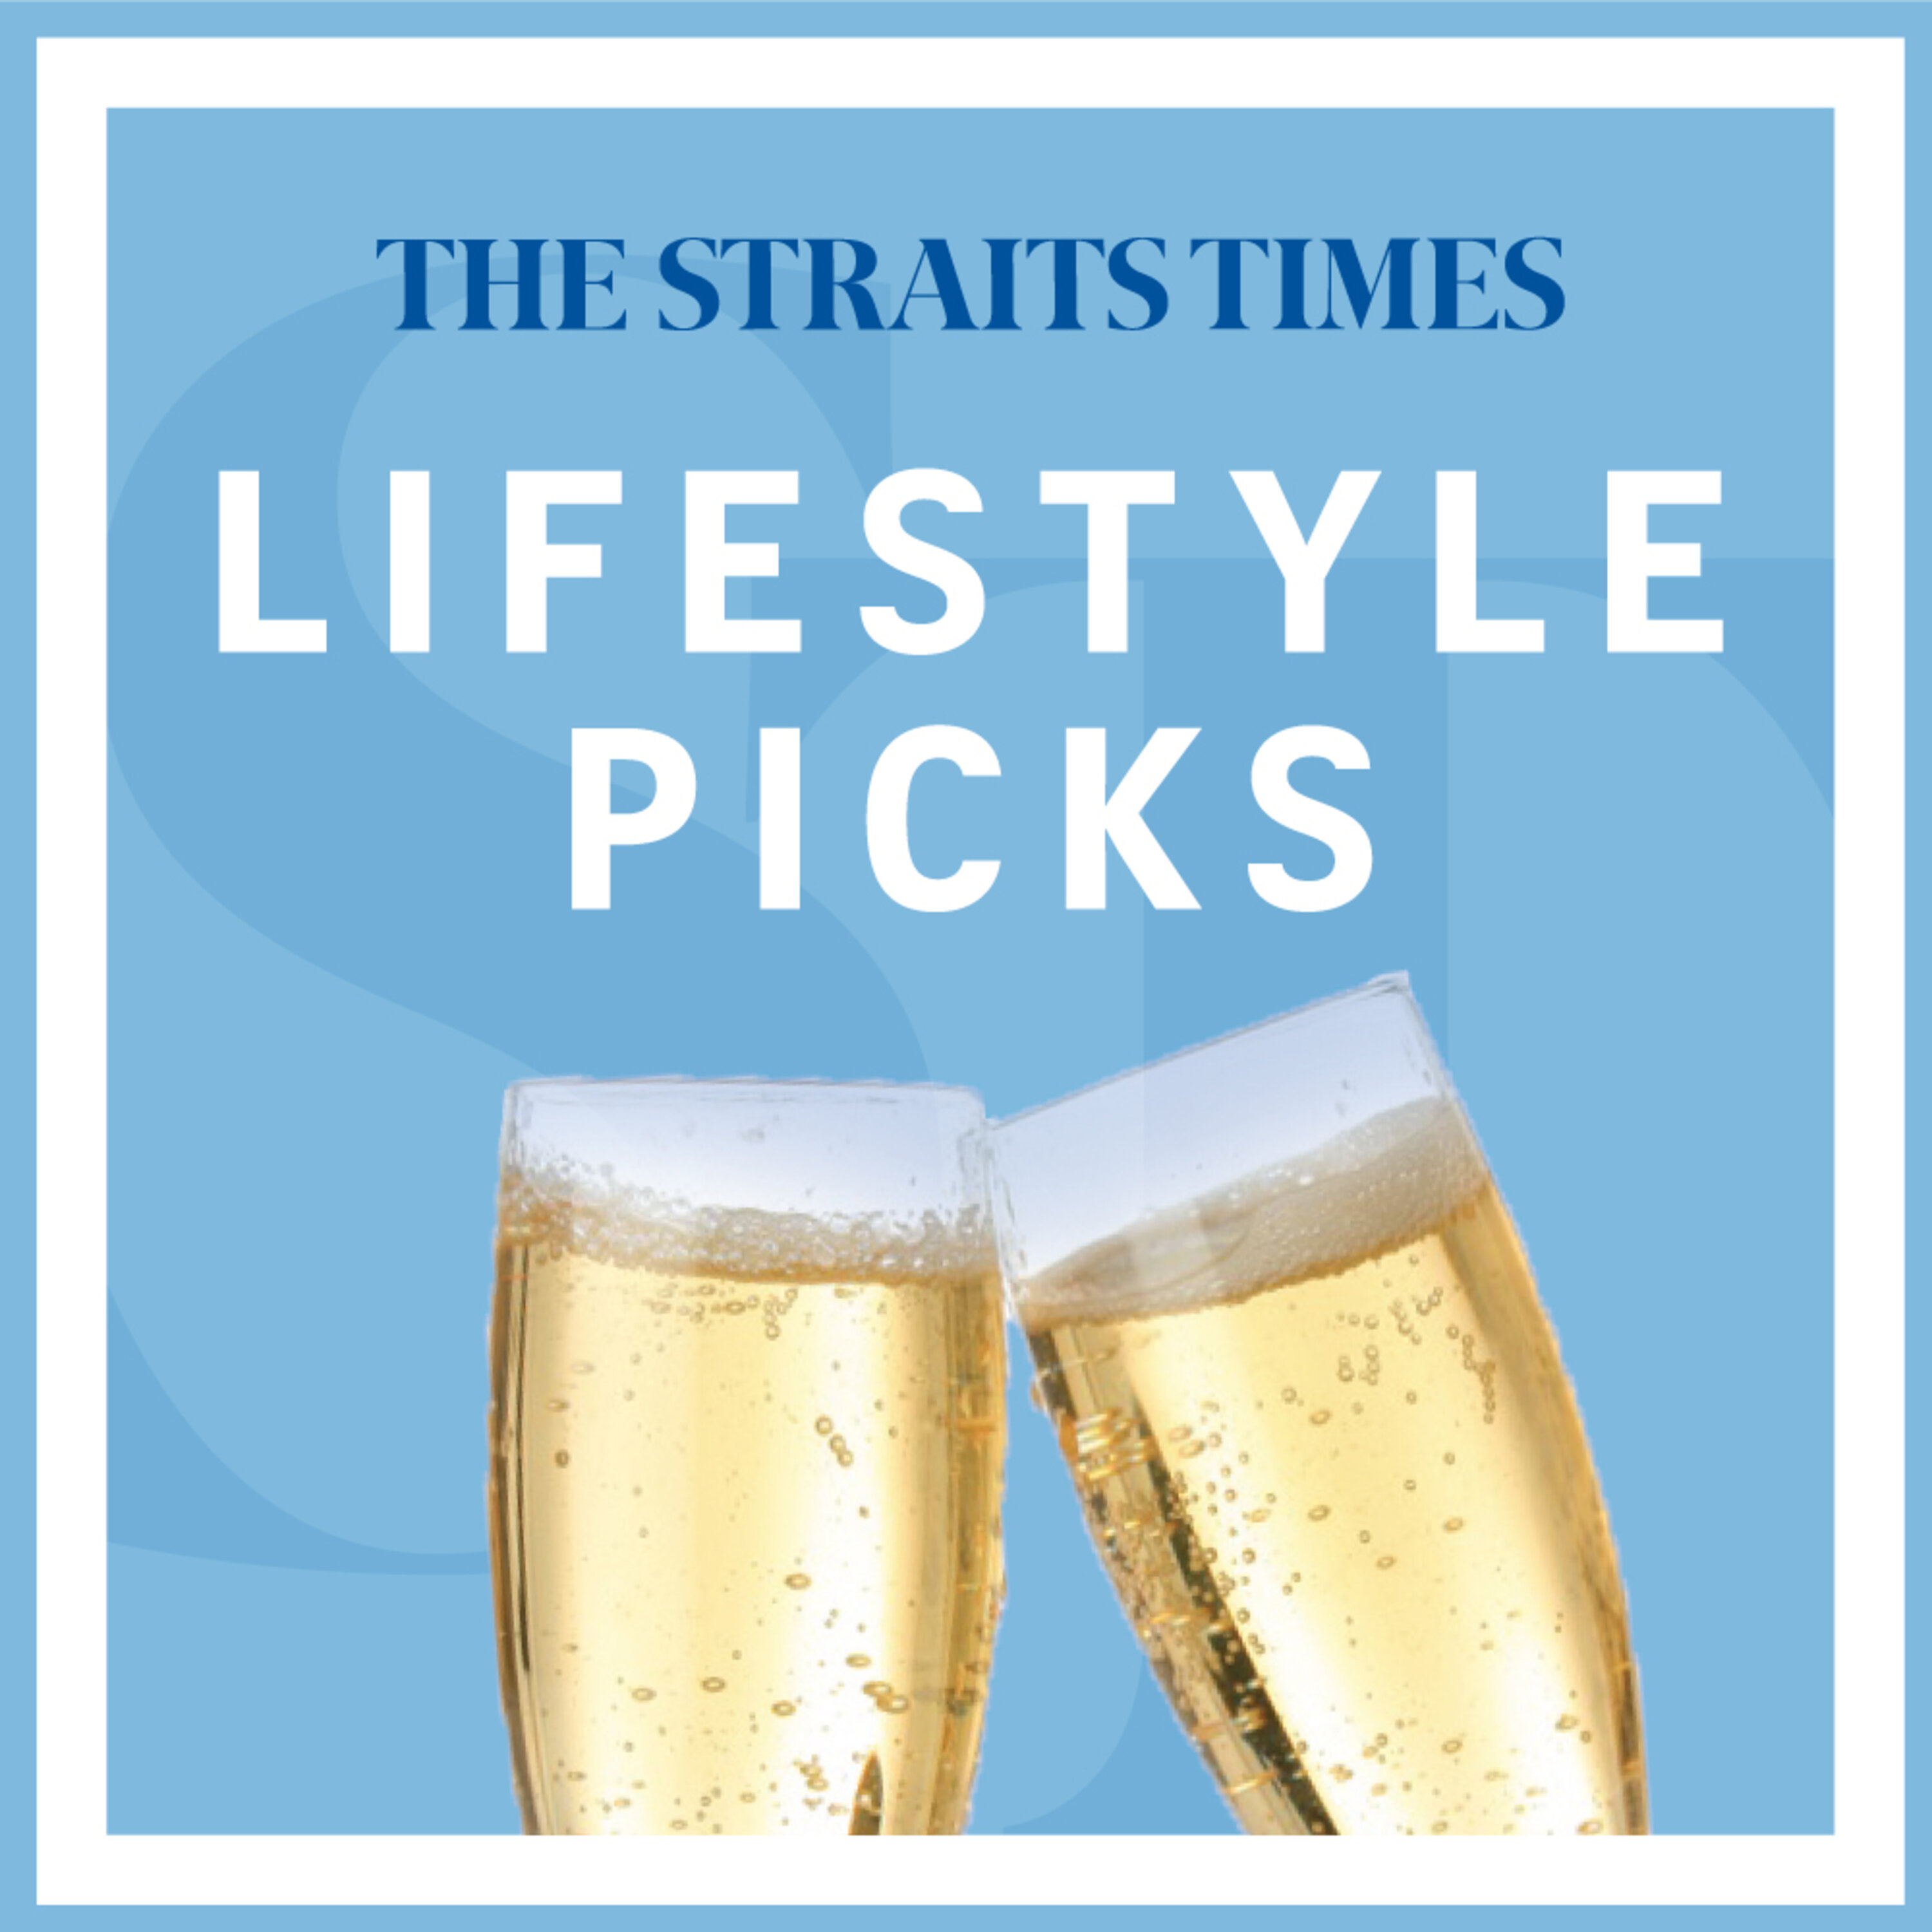 Listen to new Spotify Singapore music playlists; get bubble tea delivered home: Lifestyle Picks Ep 78 (#StayHome edition)